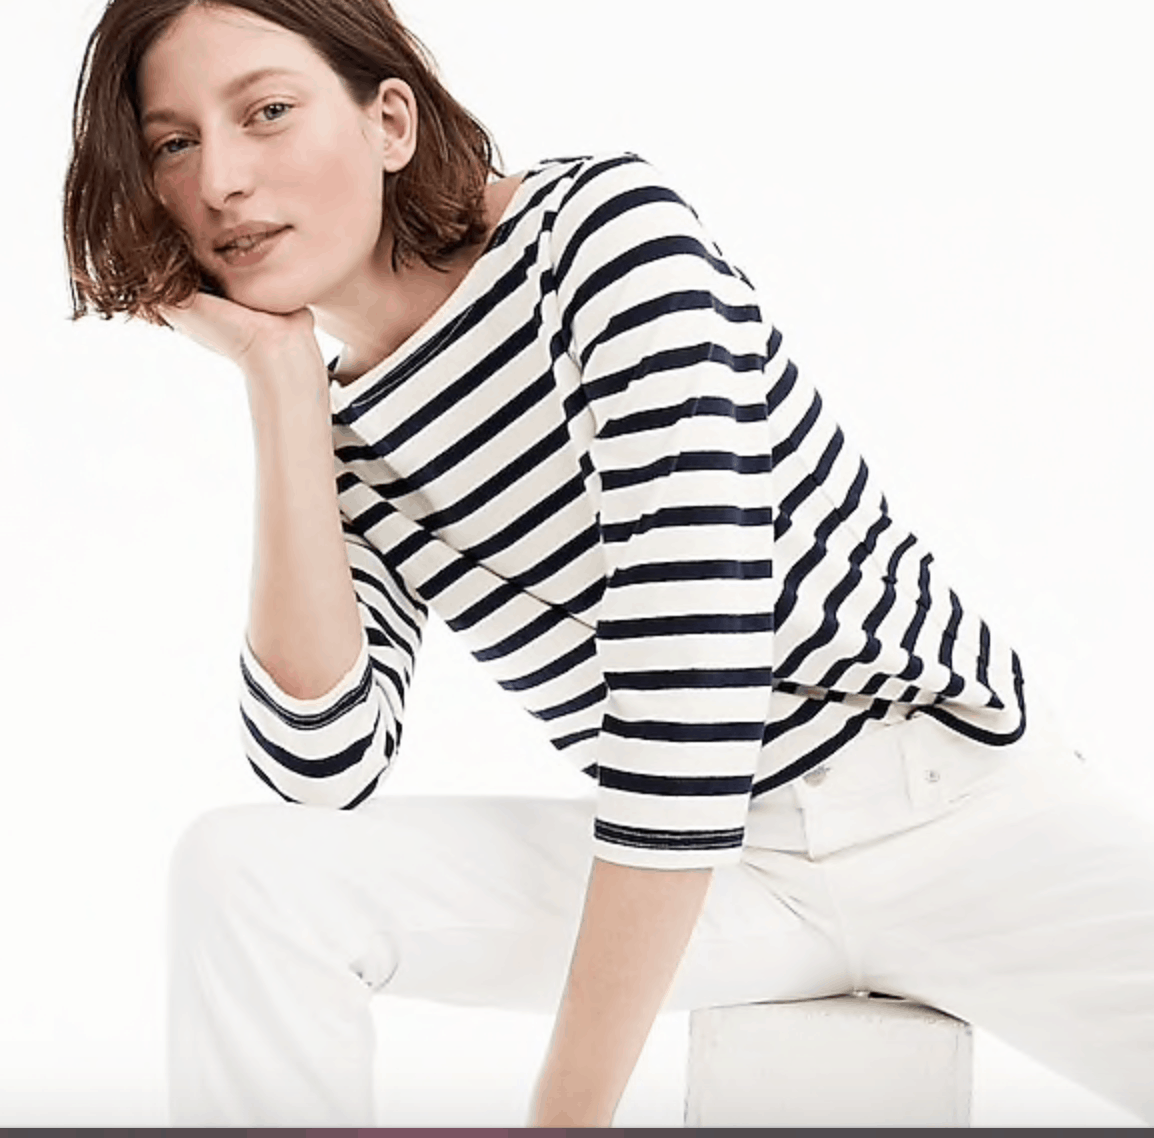 J. Crew Classic fitted striped tee